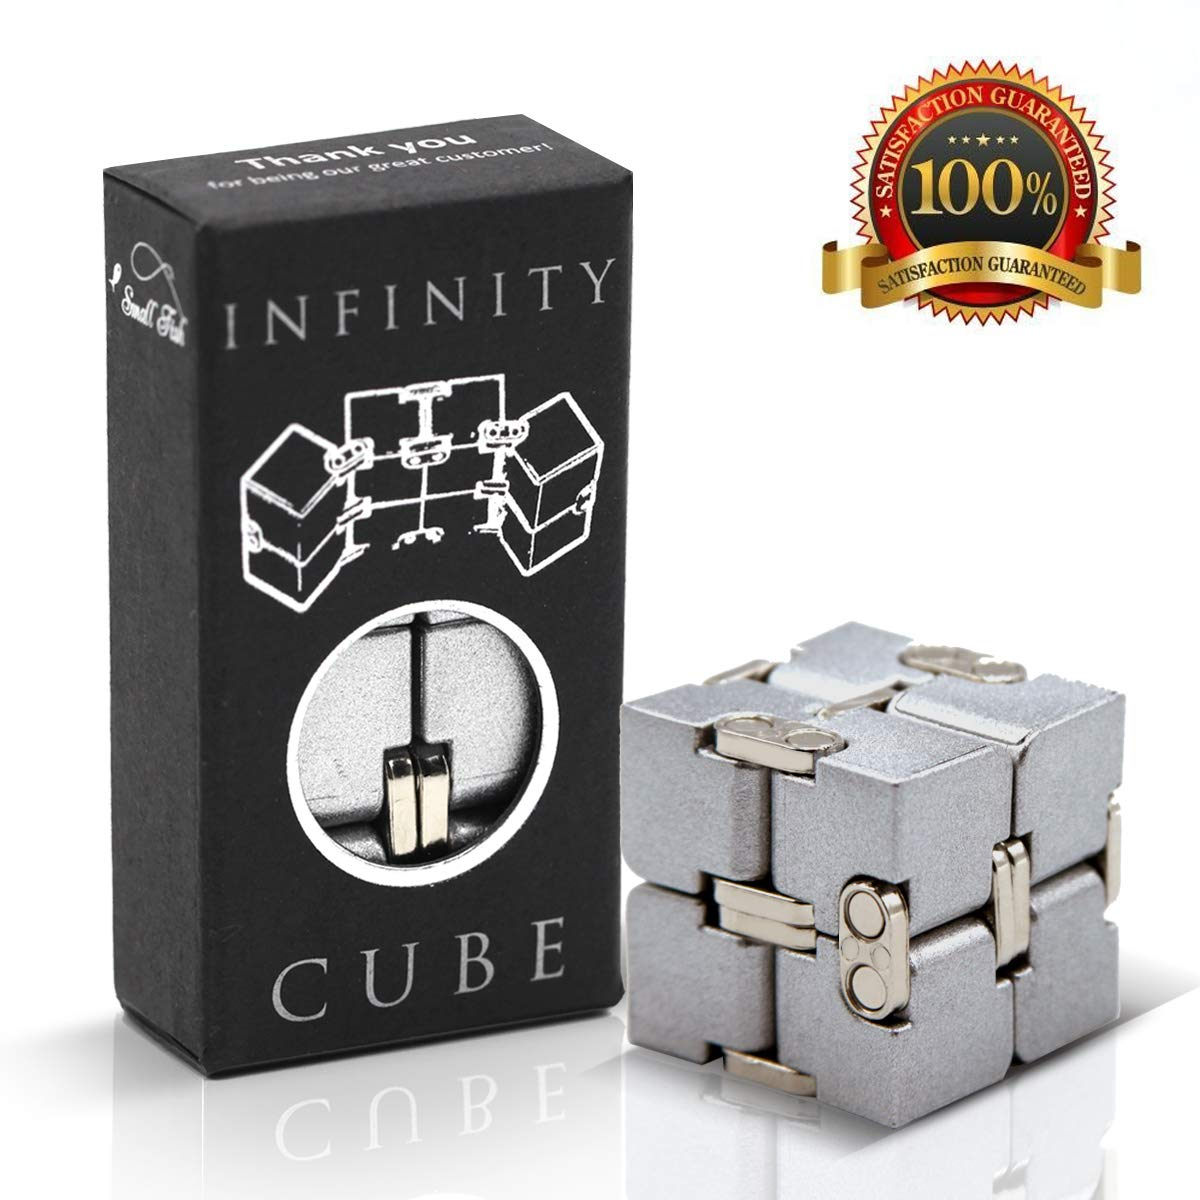 Fidget Cube Infinity Toy Gadget in Metal Aluminum for Kids, Teens, and Adults, Best Anxiety and Stress Relief Sensory Fidgeting Game, Ideal and Cool Gift Puzzle for Boys and Girls by SMALL FISH